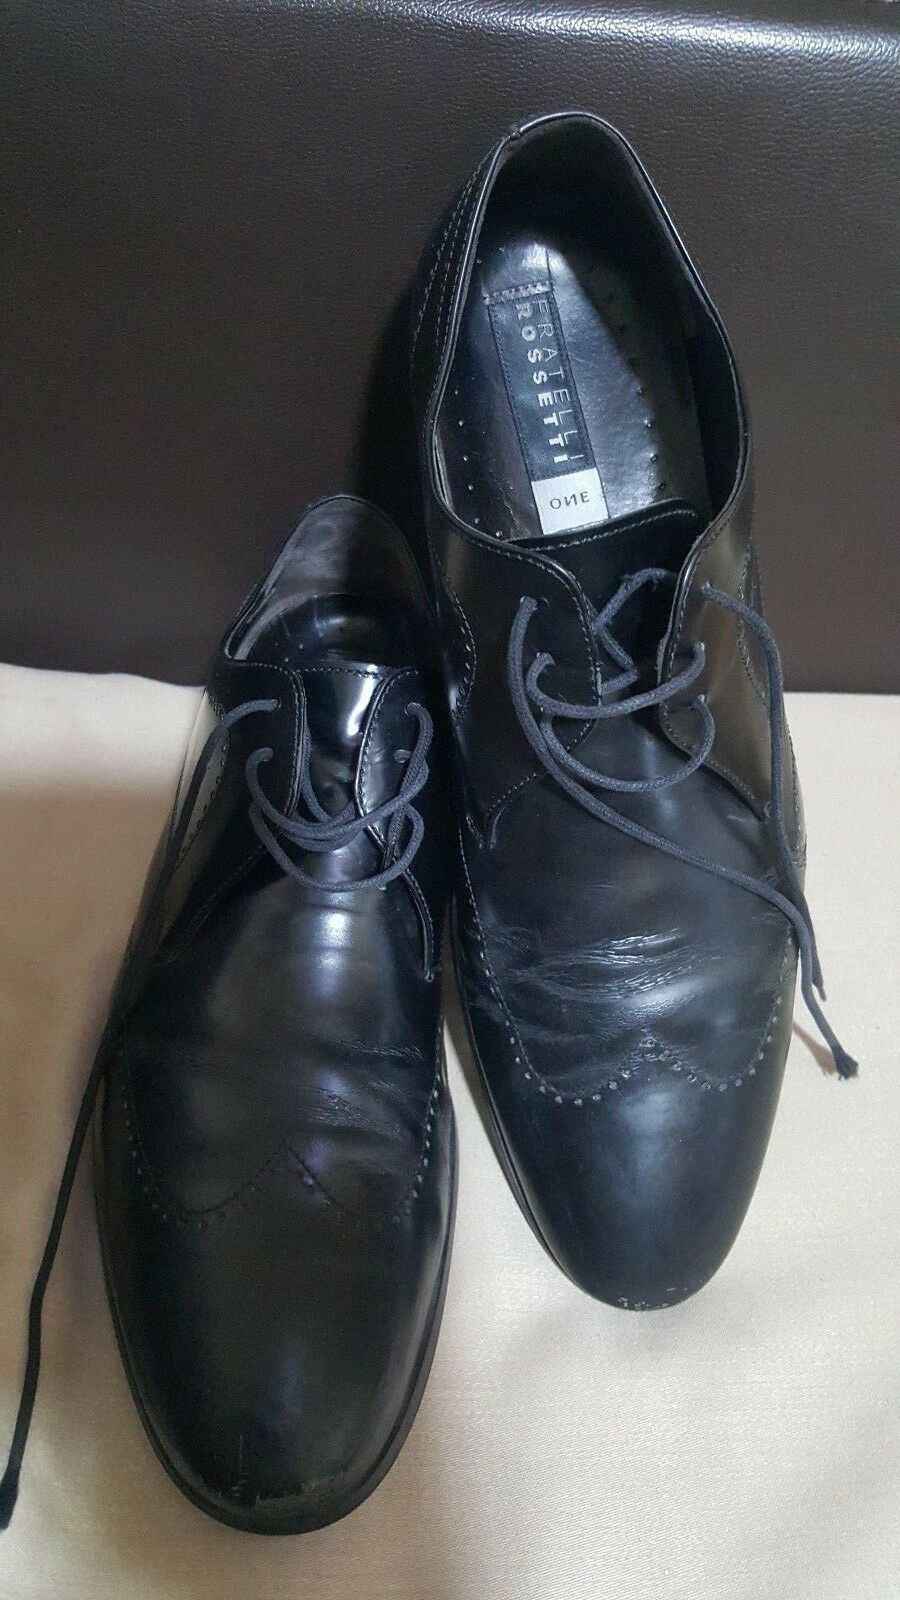 FRATELLI ROSSETTI Made in  Black Leather Men's shoes -size UK 7  EU 41-